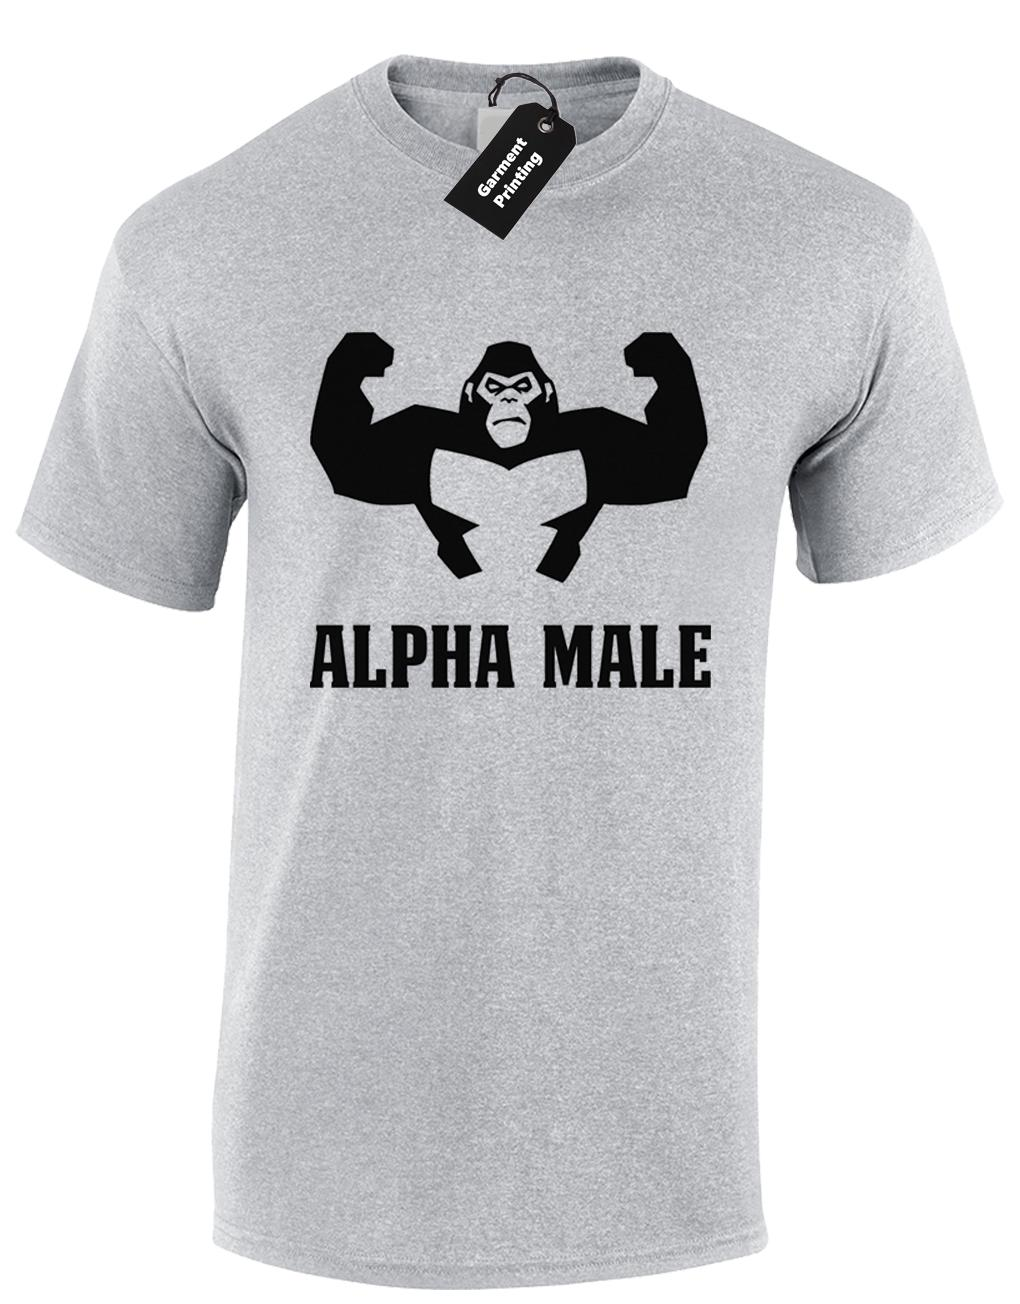 4461cefaa5f6 ALPHA MALE GORILLA MENS T SHIRT GYM FITNESS BODYBUILDING DESIGN TRAINING  TOP NEW Funny Unisex Casual Gift Vintage T Shirts Band T Shirts From  Superstartees, ...